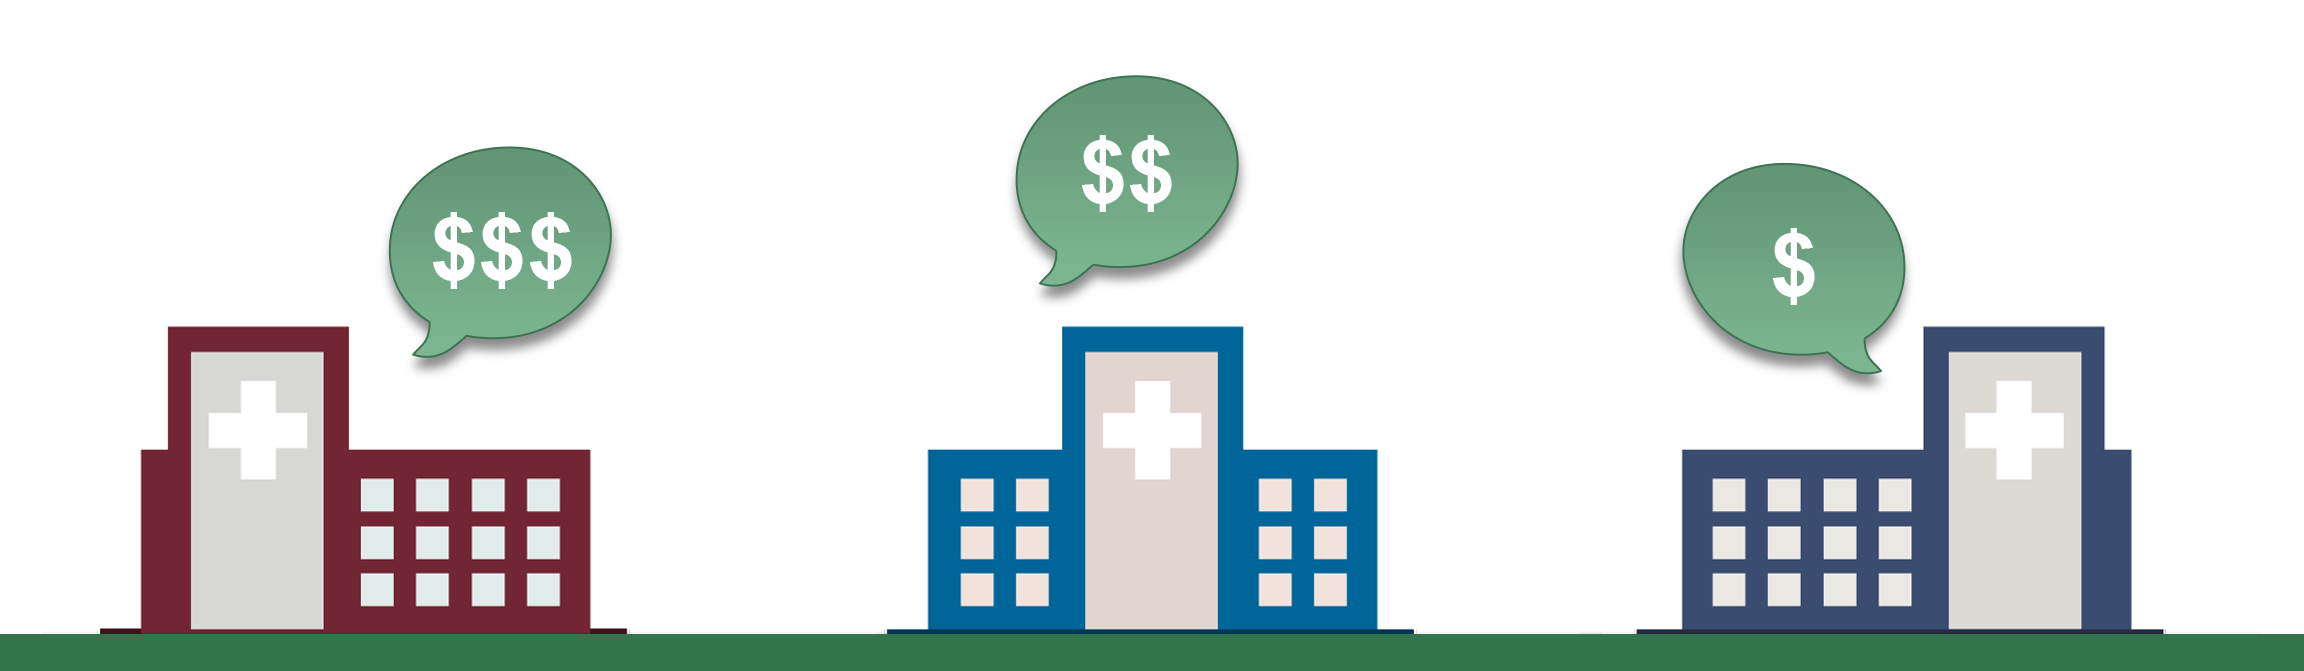 Building Your Practice's Approach To Price Transparency